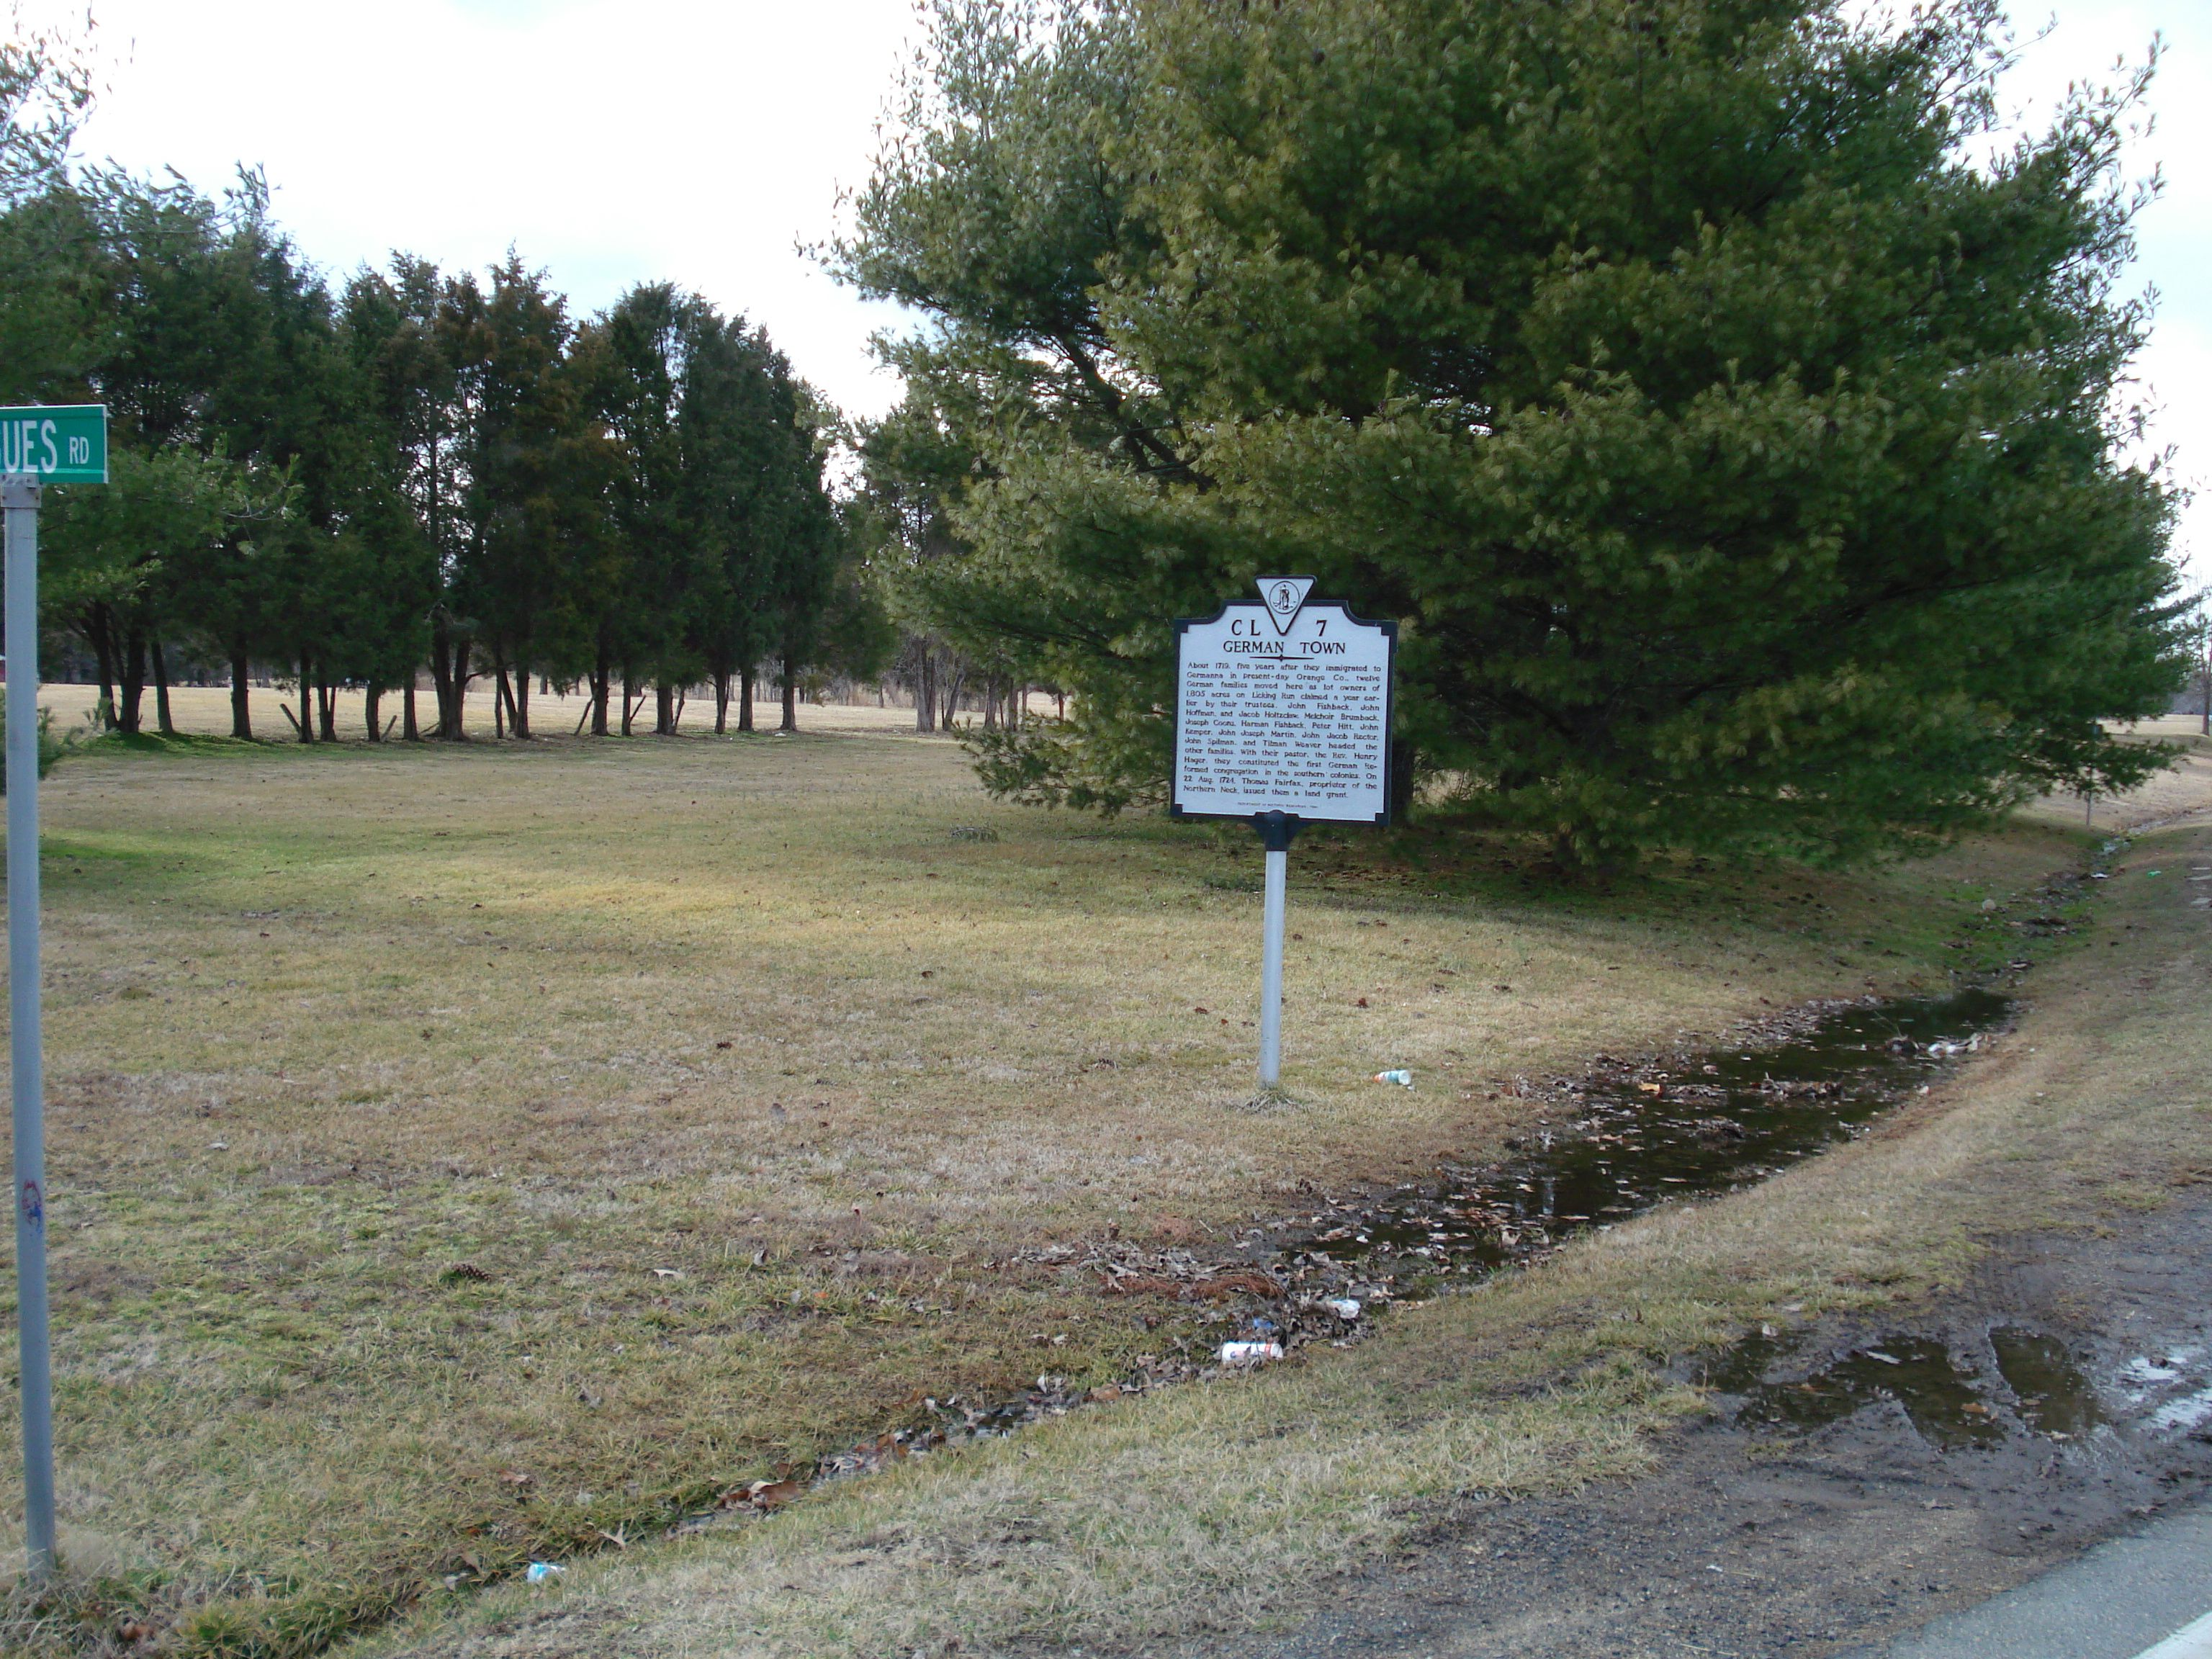 Wider view of the German Town Marker